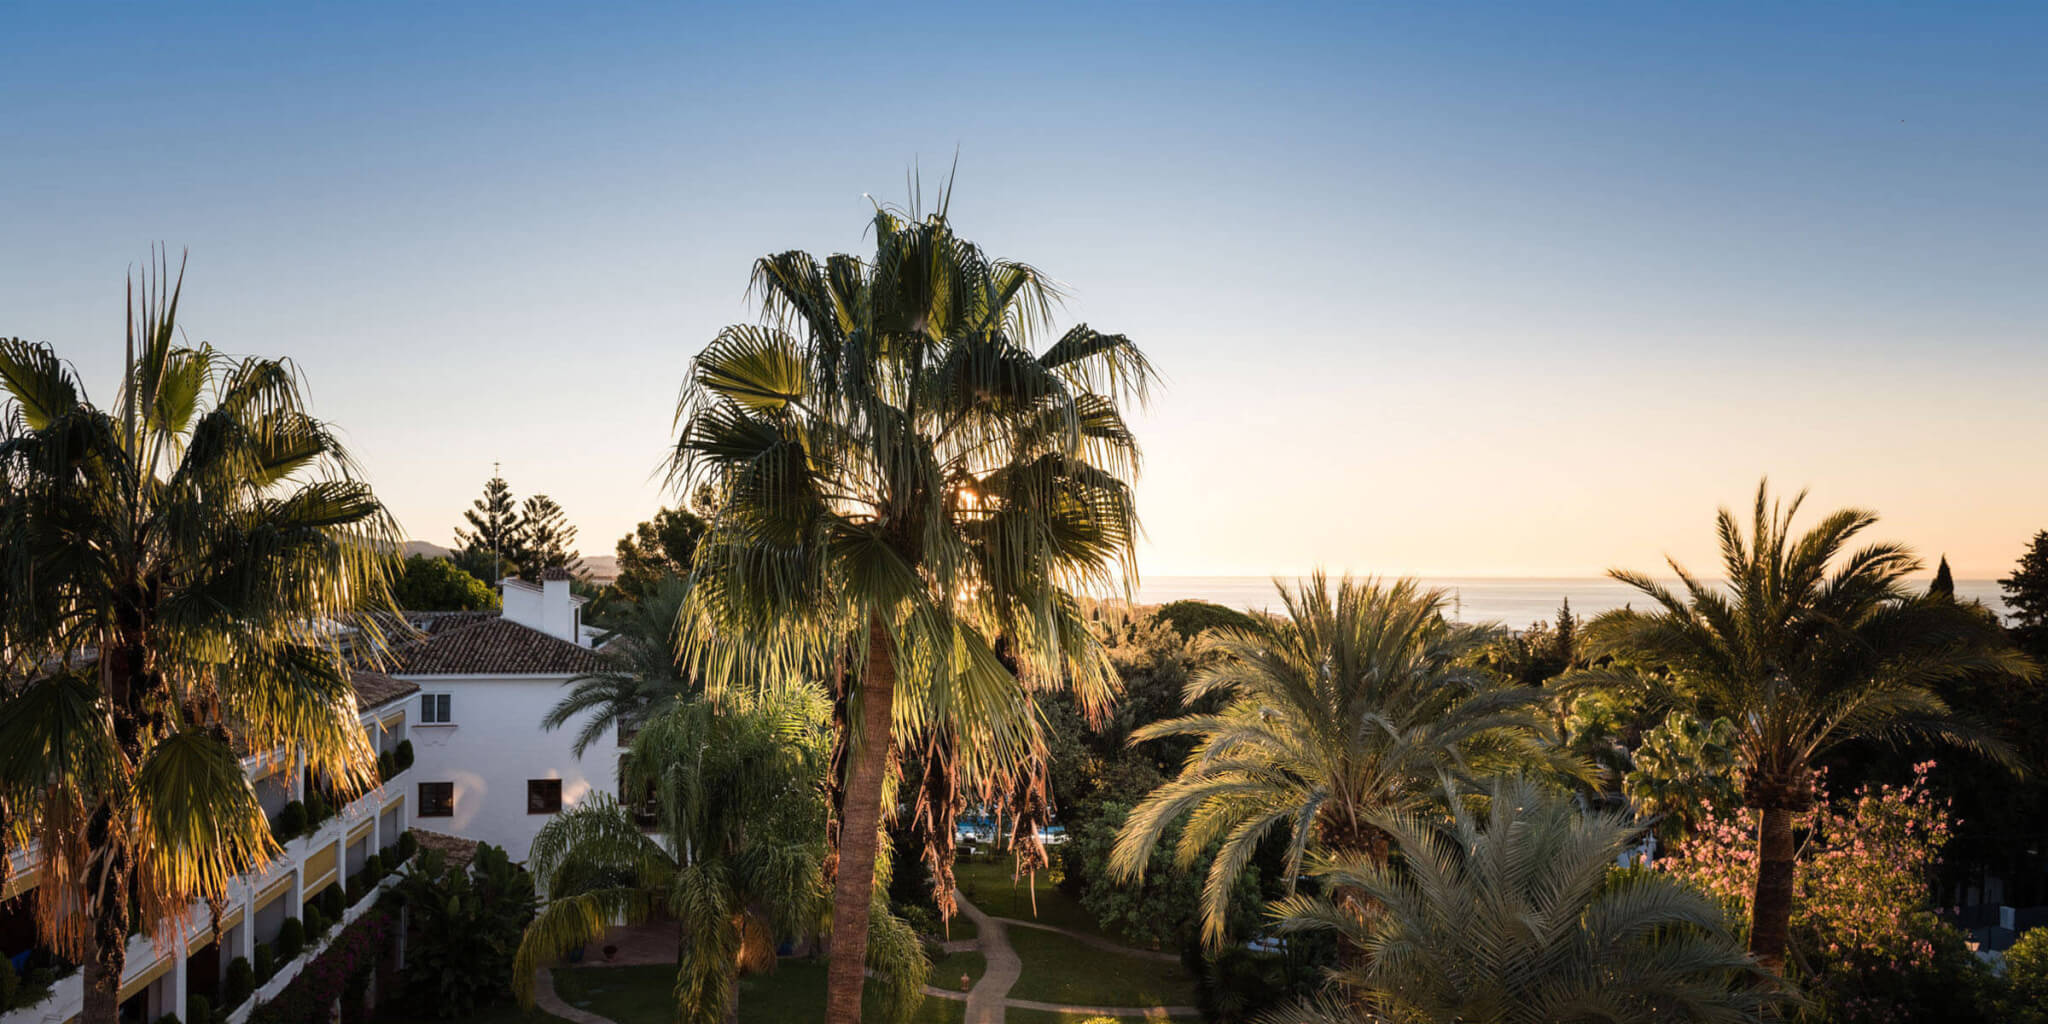 Buchinger Wilhelmi, Fasten, Heilfasten, Fasting, Health, Integrative Medicine, Marbella, View, Palms, Site